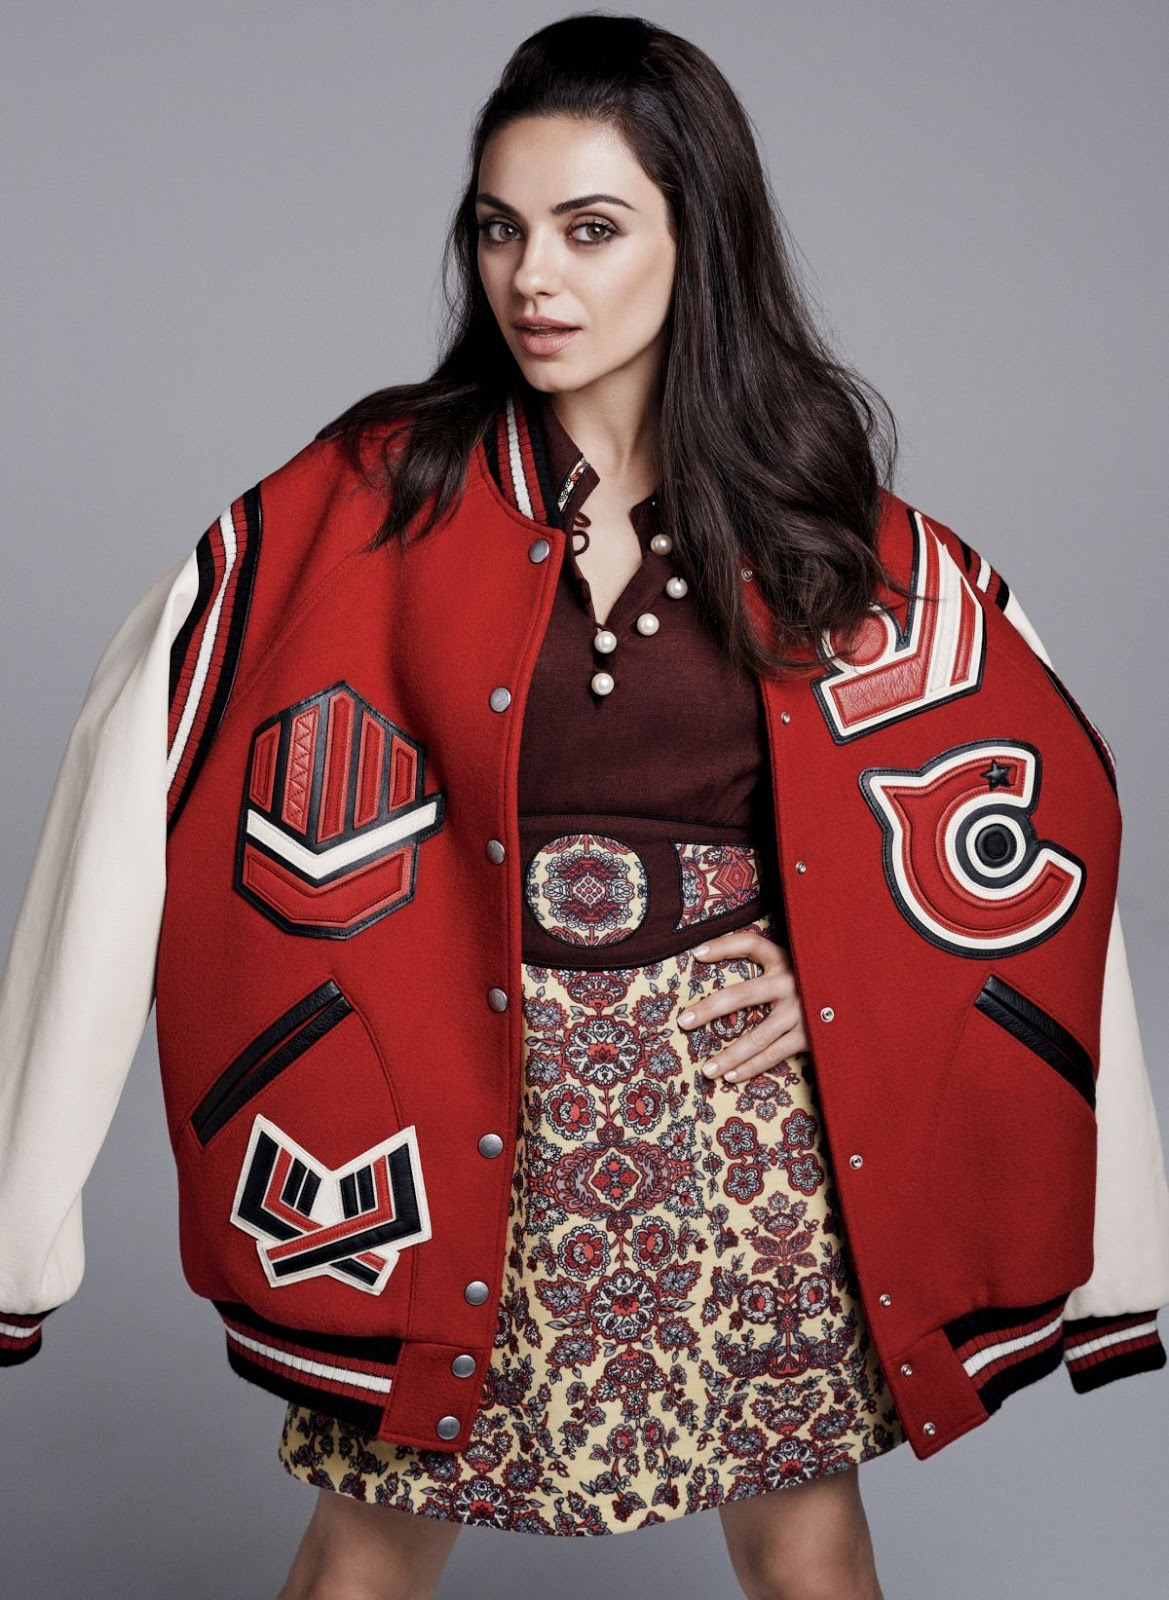 HQ Photos of Mila Kunis PhotoShoot for Glamour Magazine August